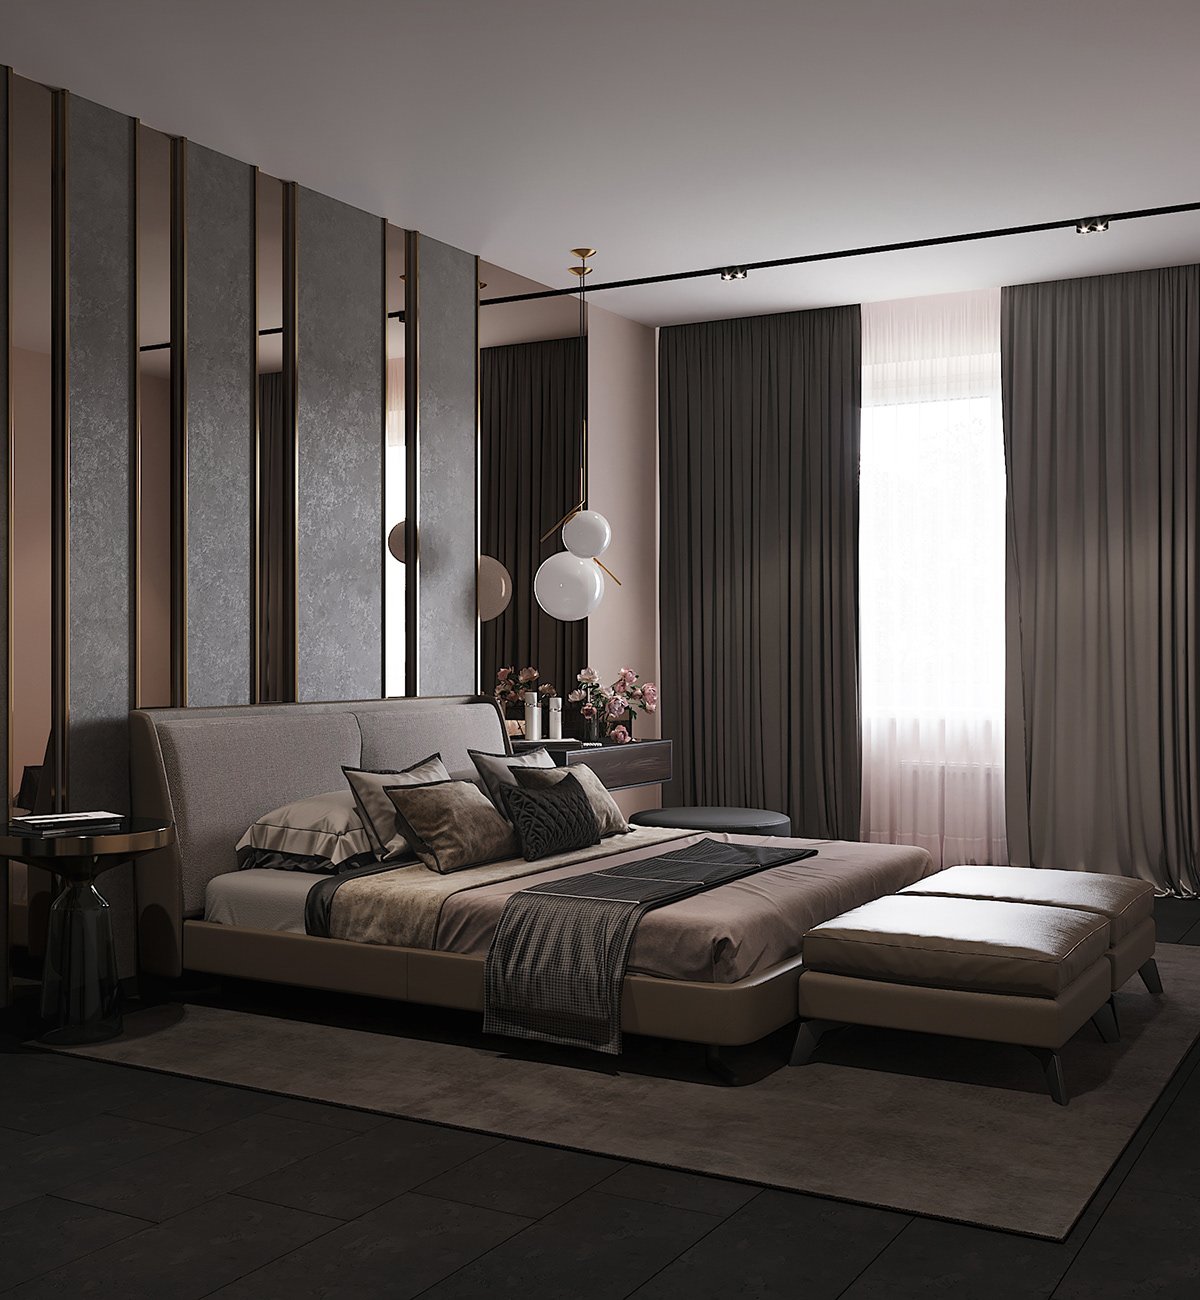 Bedroom In Contemporary Style On Behance